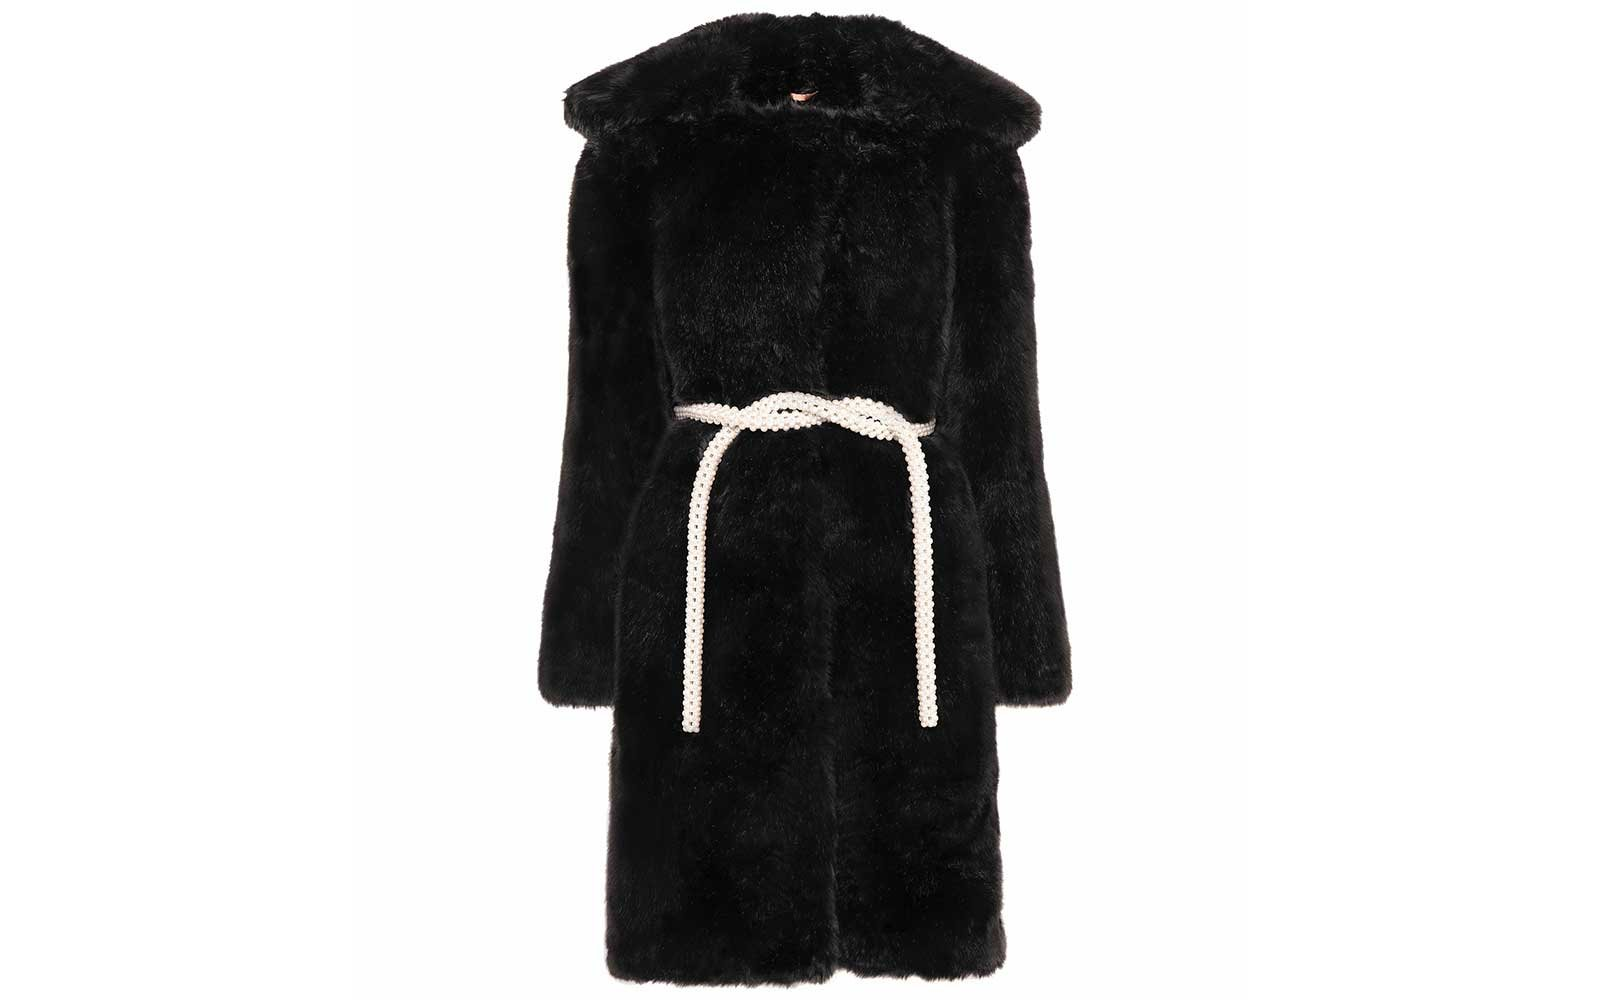 Faux fur cot by Shrimps